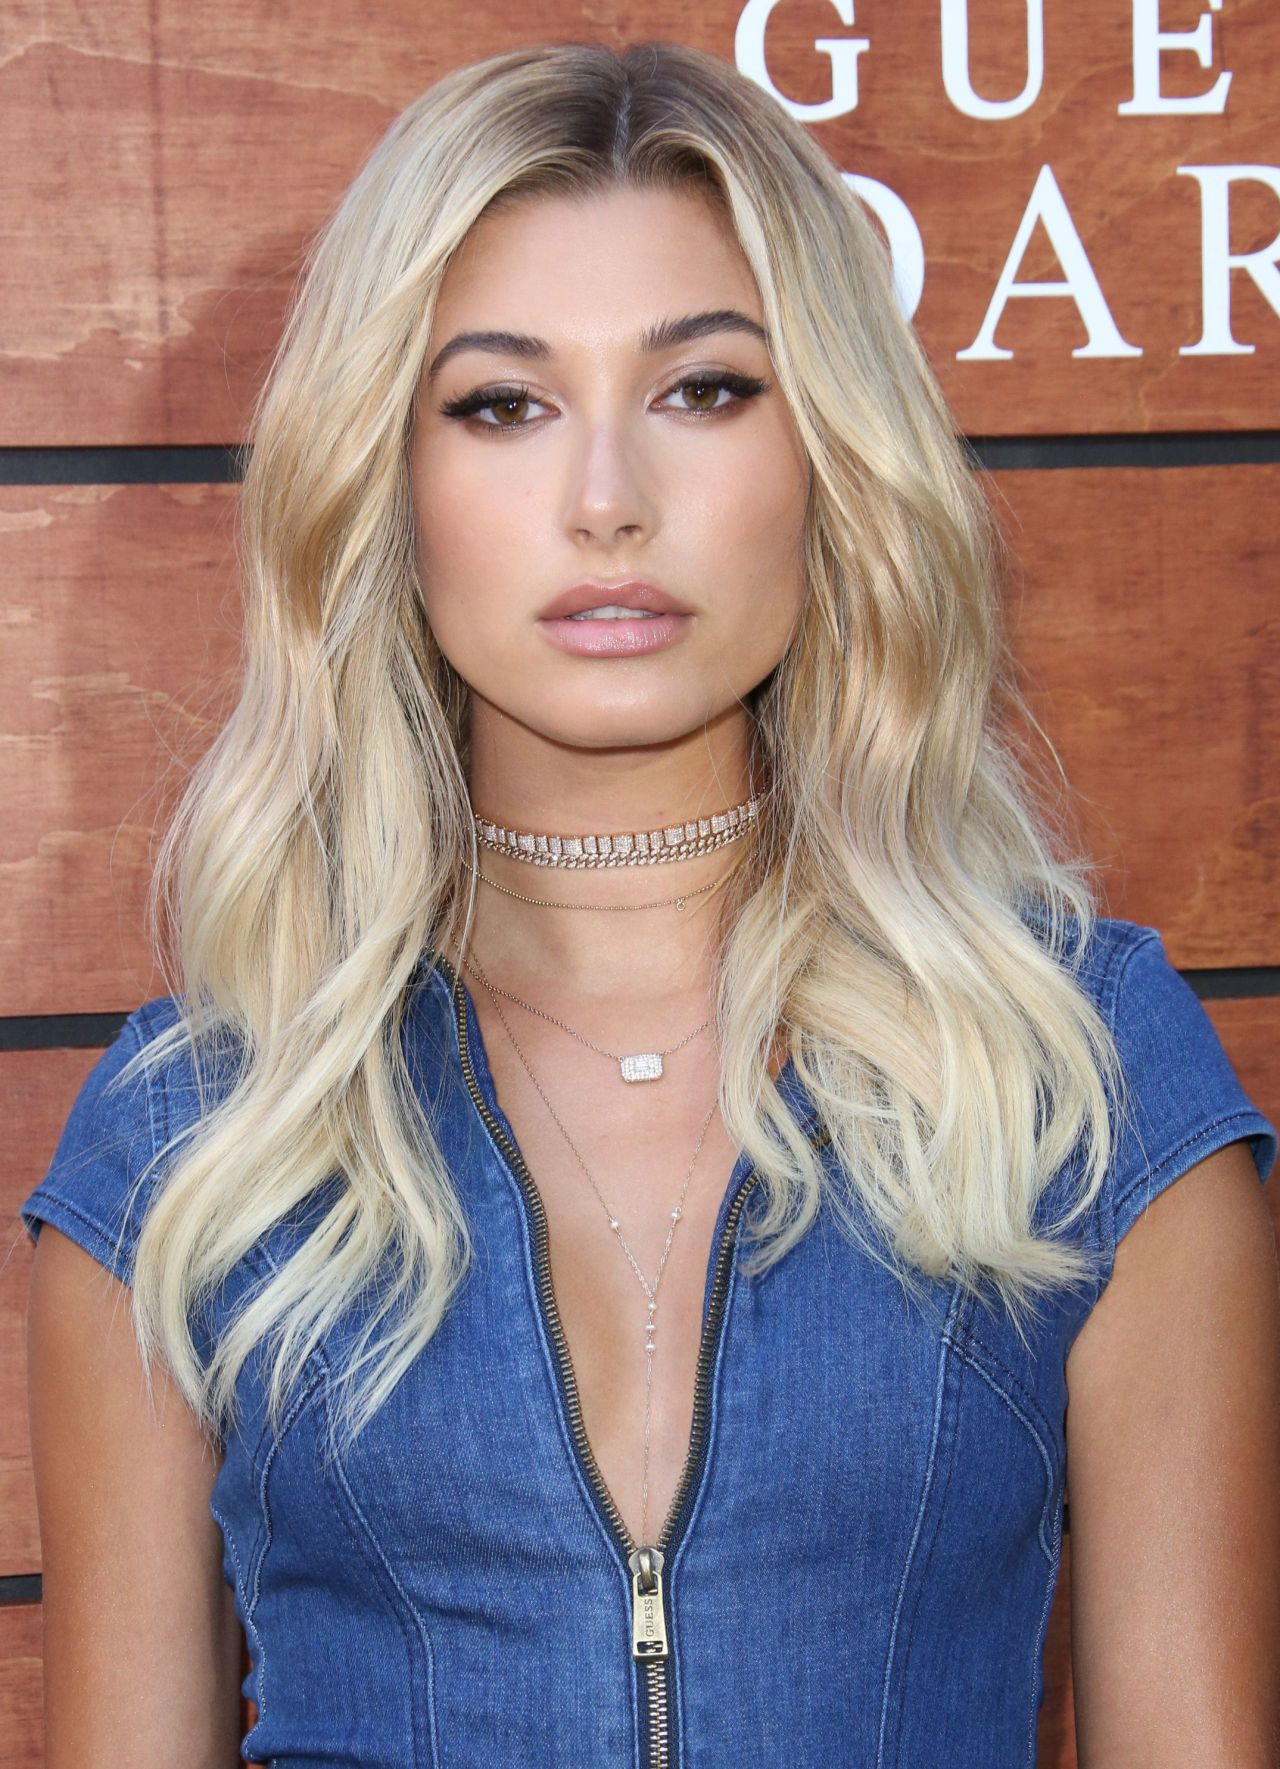 Hailey Baldwin Guess Dare Fragrance Launch In Los